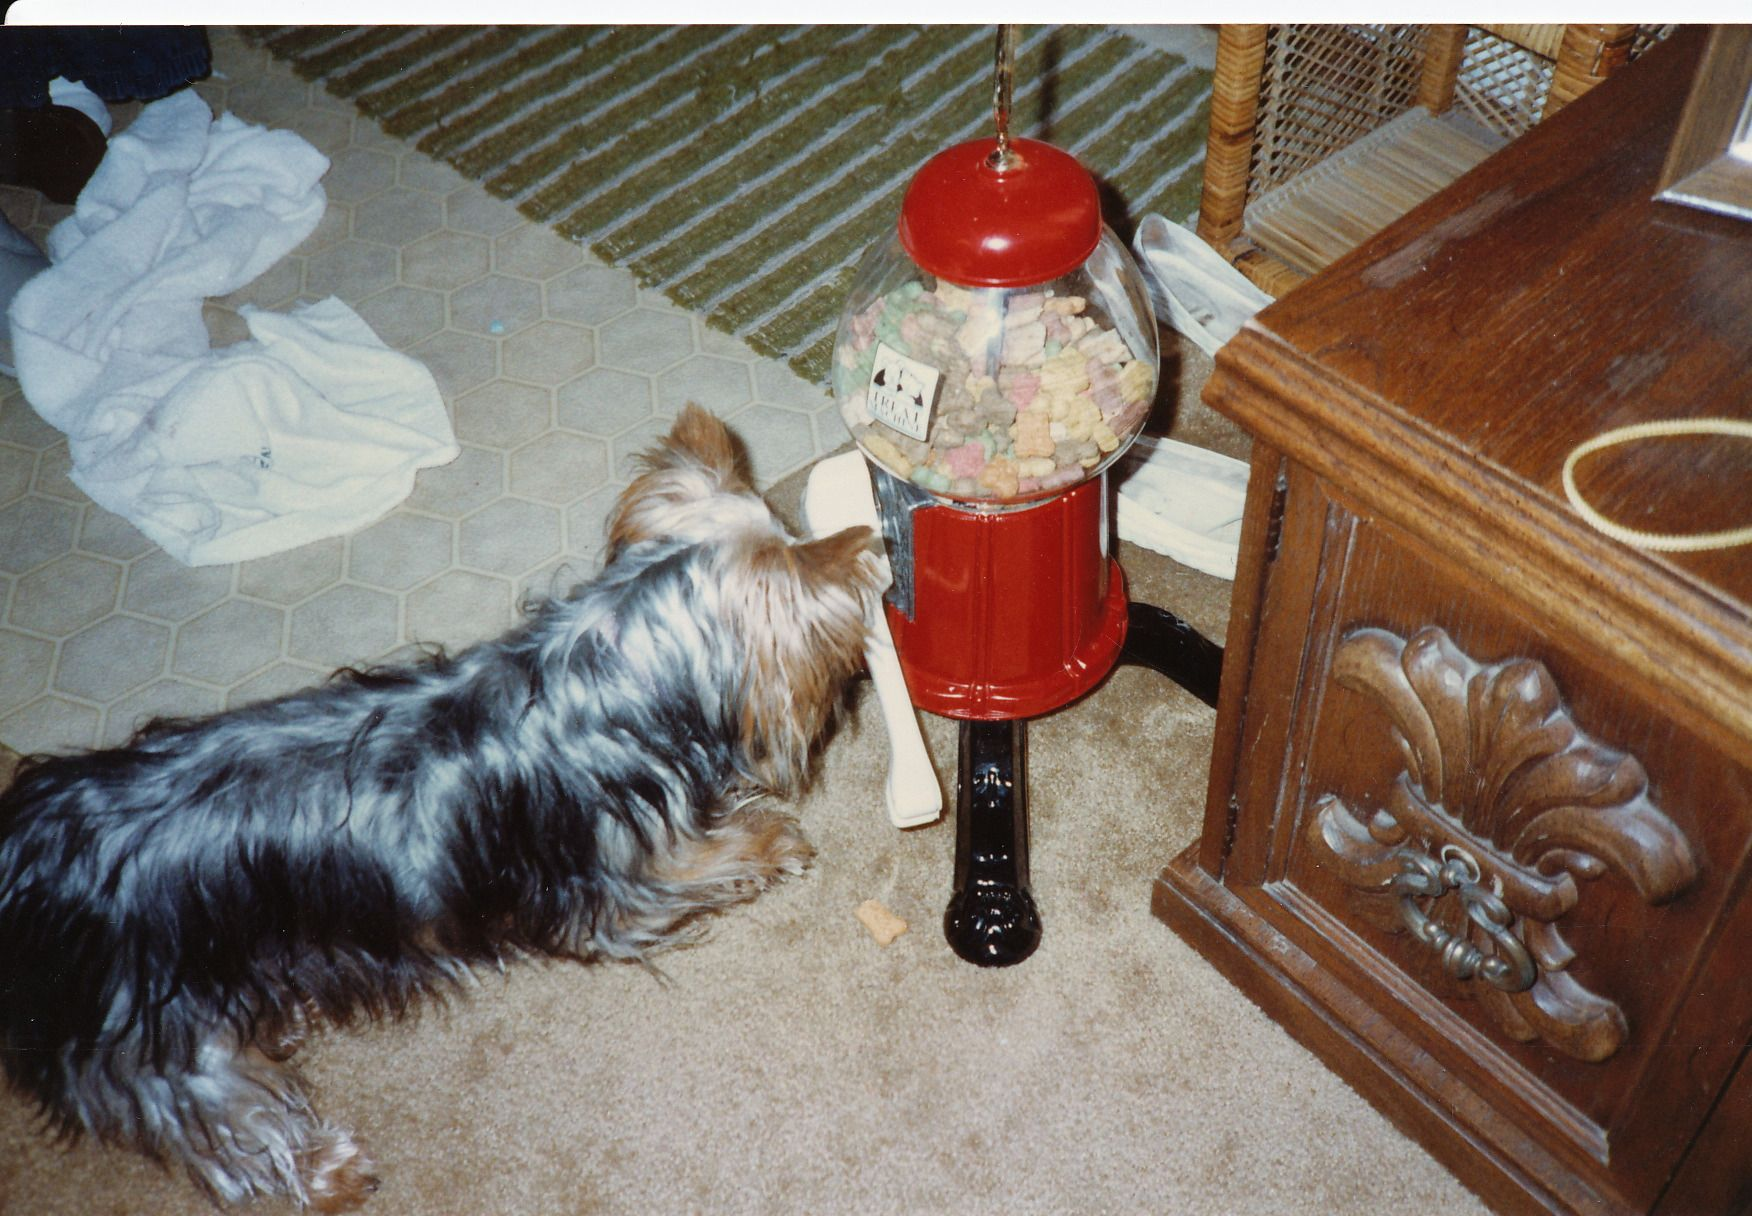 Taxi had her own treat machine.  She would push down on the bone and a treat would come out.